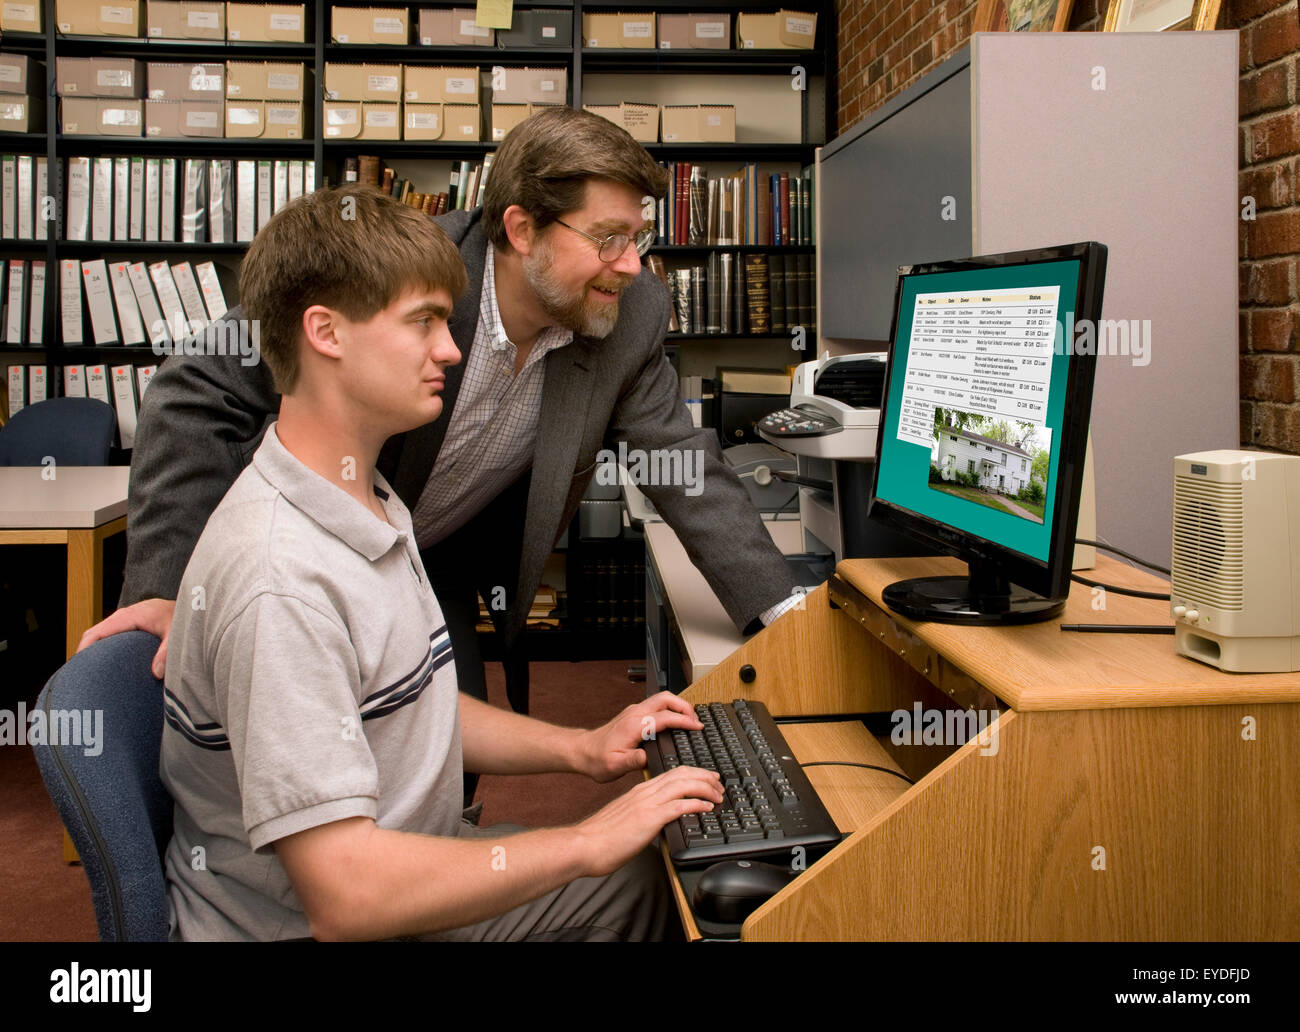 Teacher or mentor guiding a student in a database search in an archive or library room - Stock Image